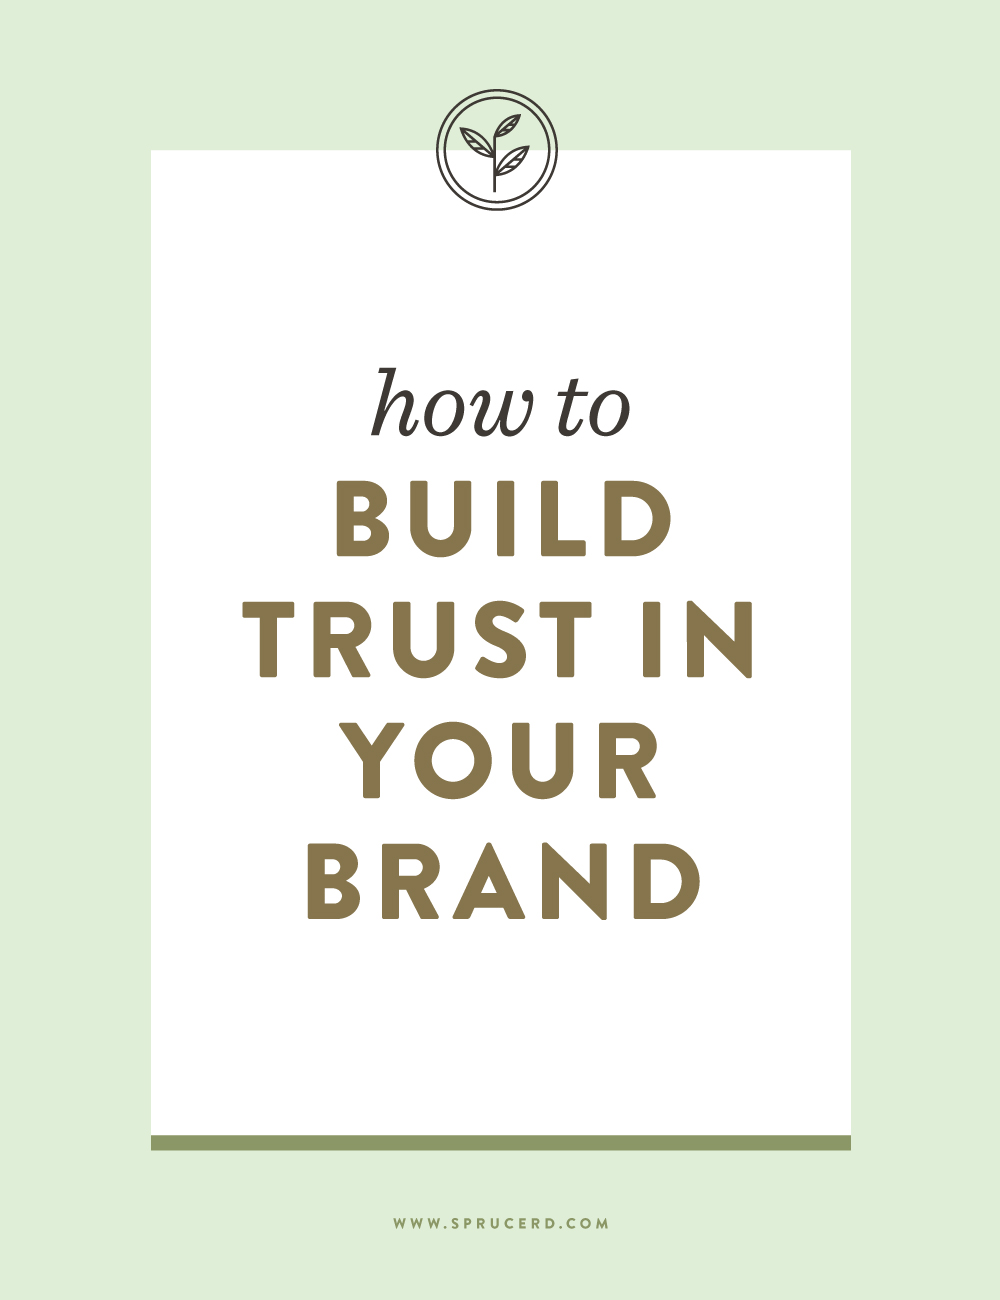 How to build trust in your brand — Spruce Rd.